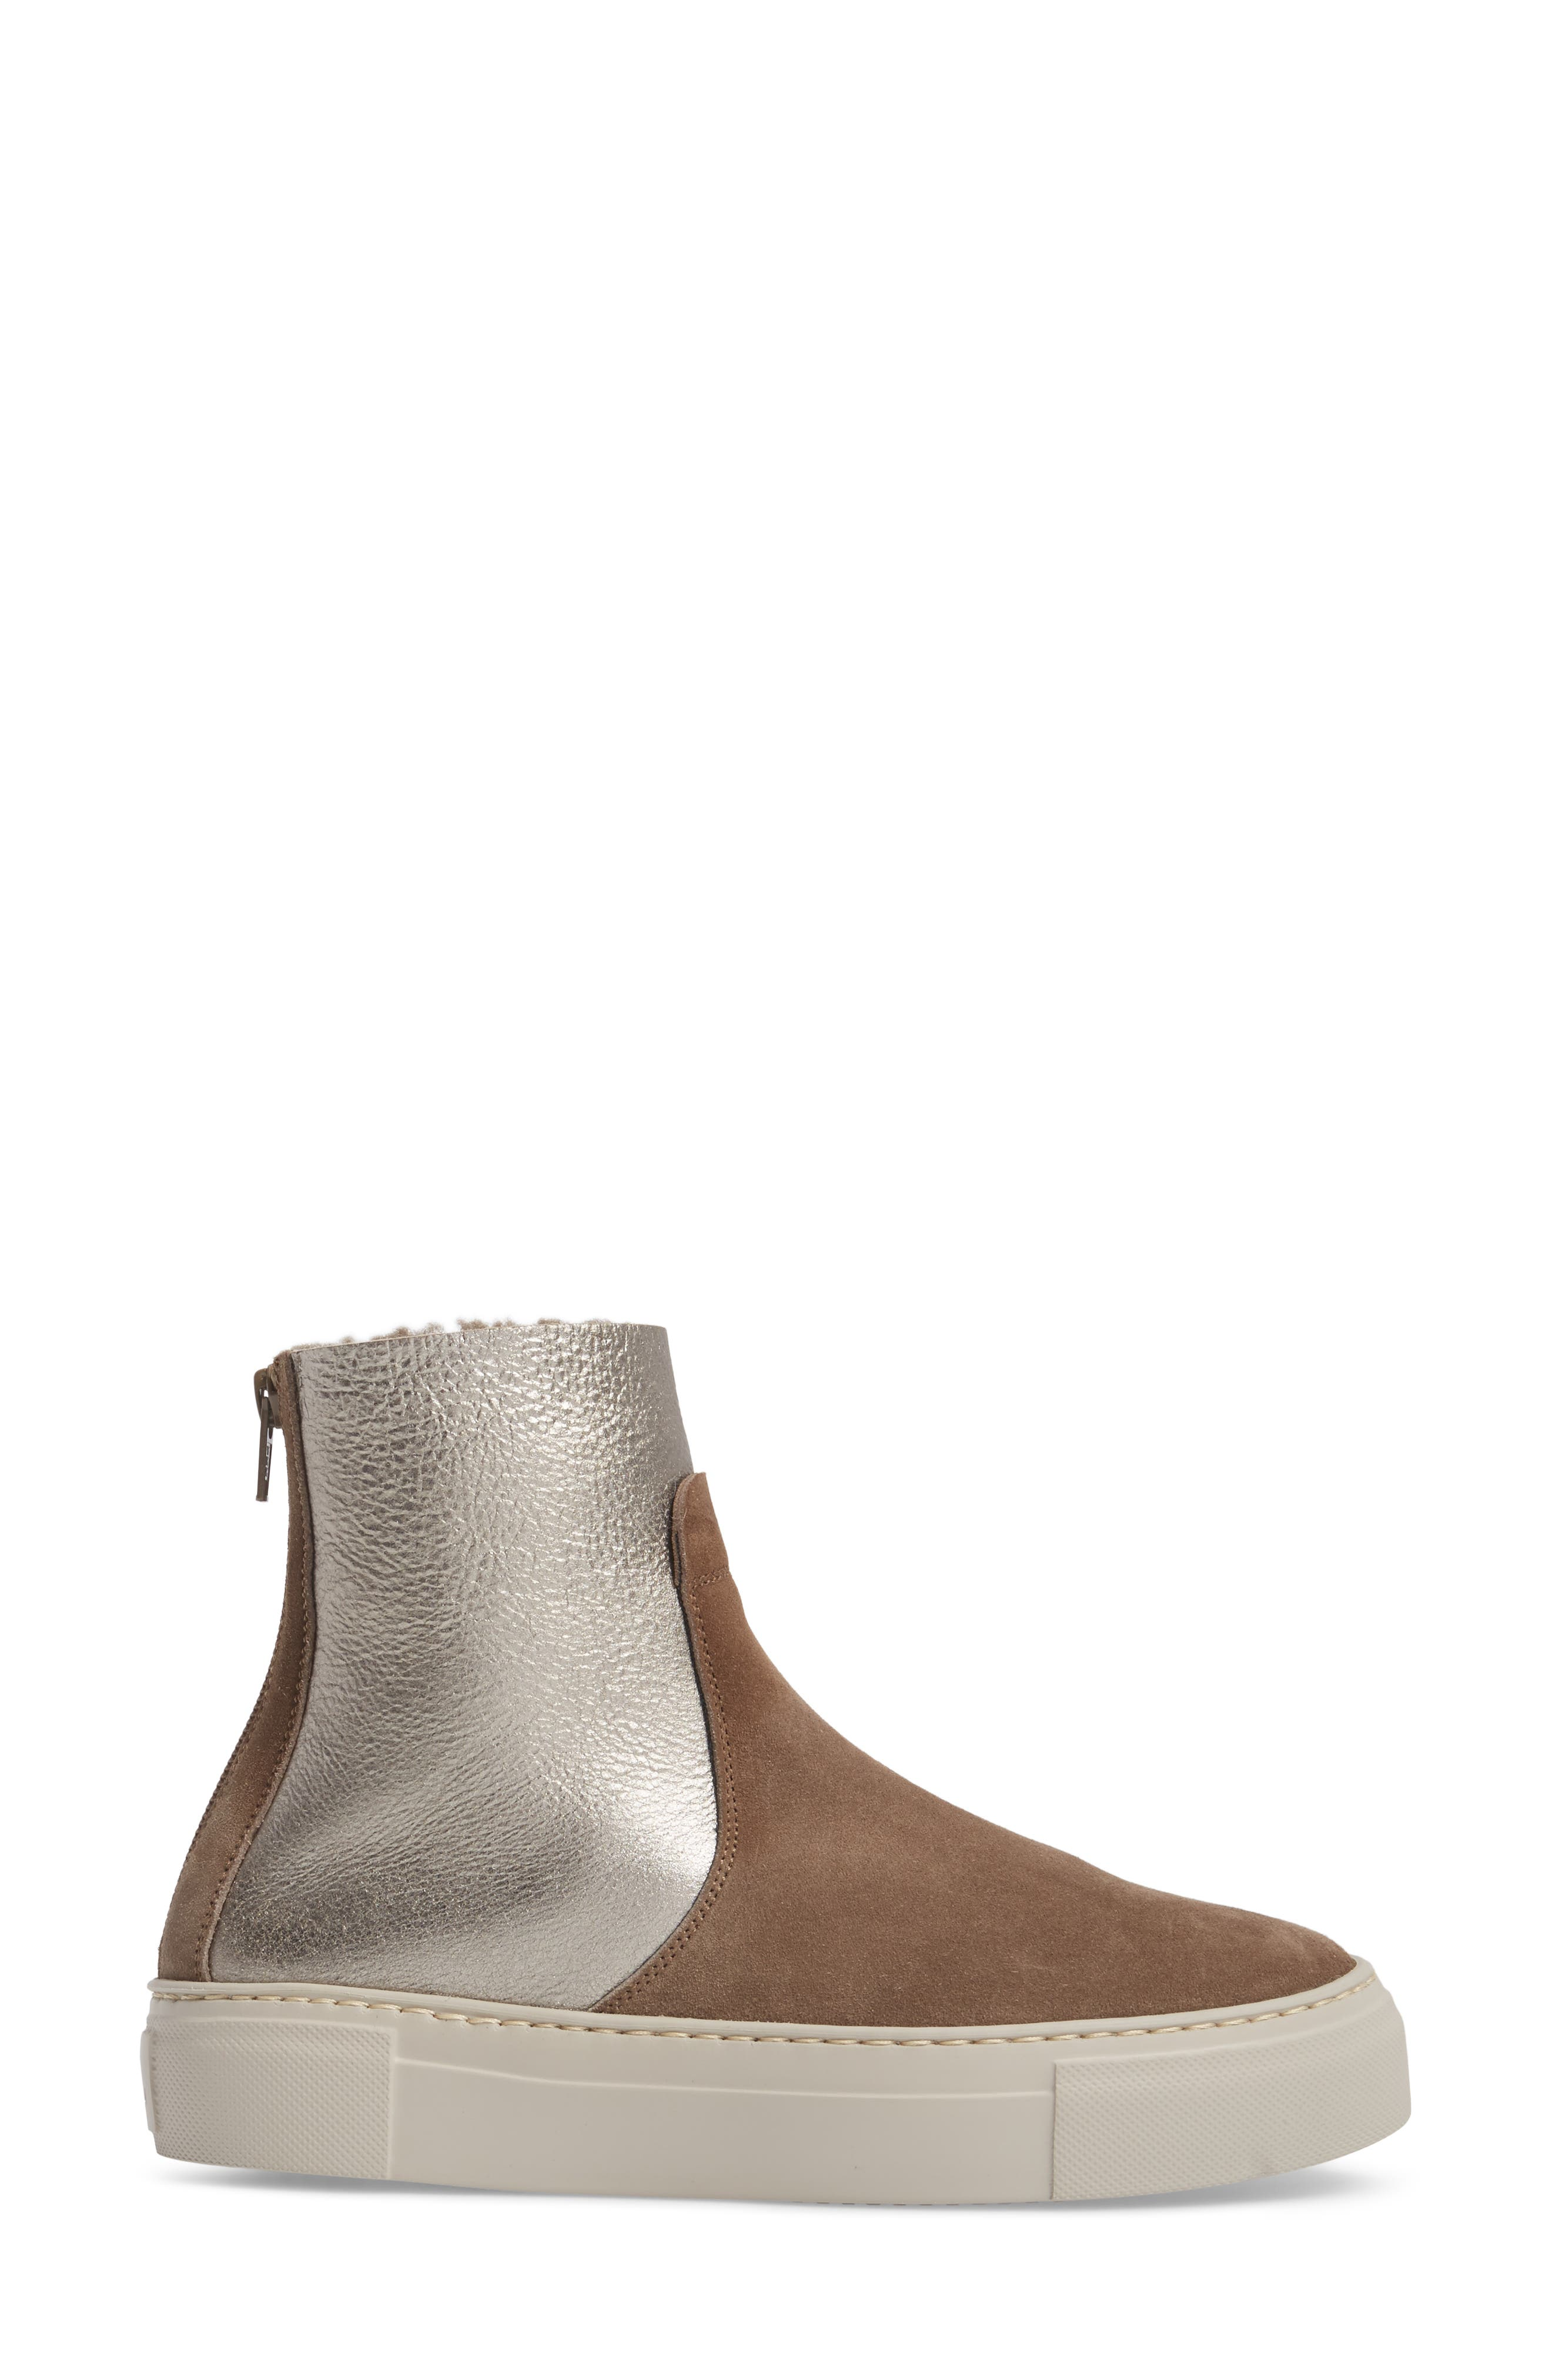 Sport Genuine Shearling Lined Bootie,                             Alternate thumbnail 3, color,                             255